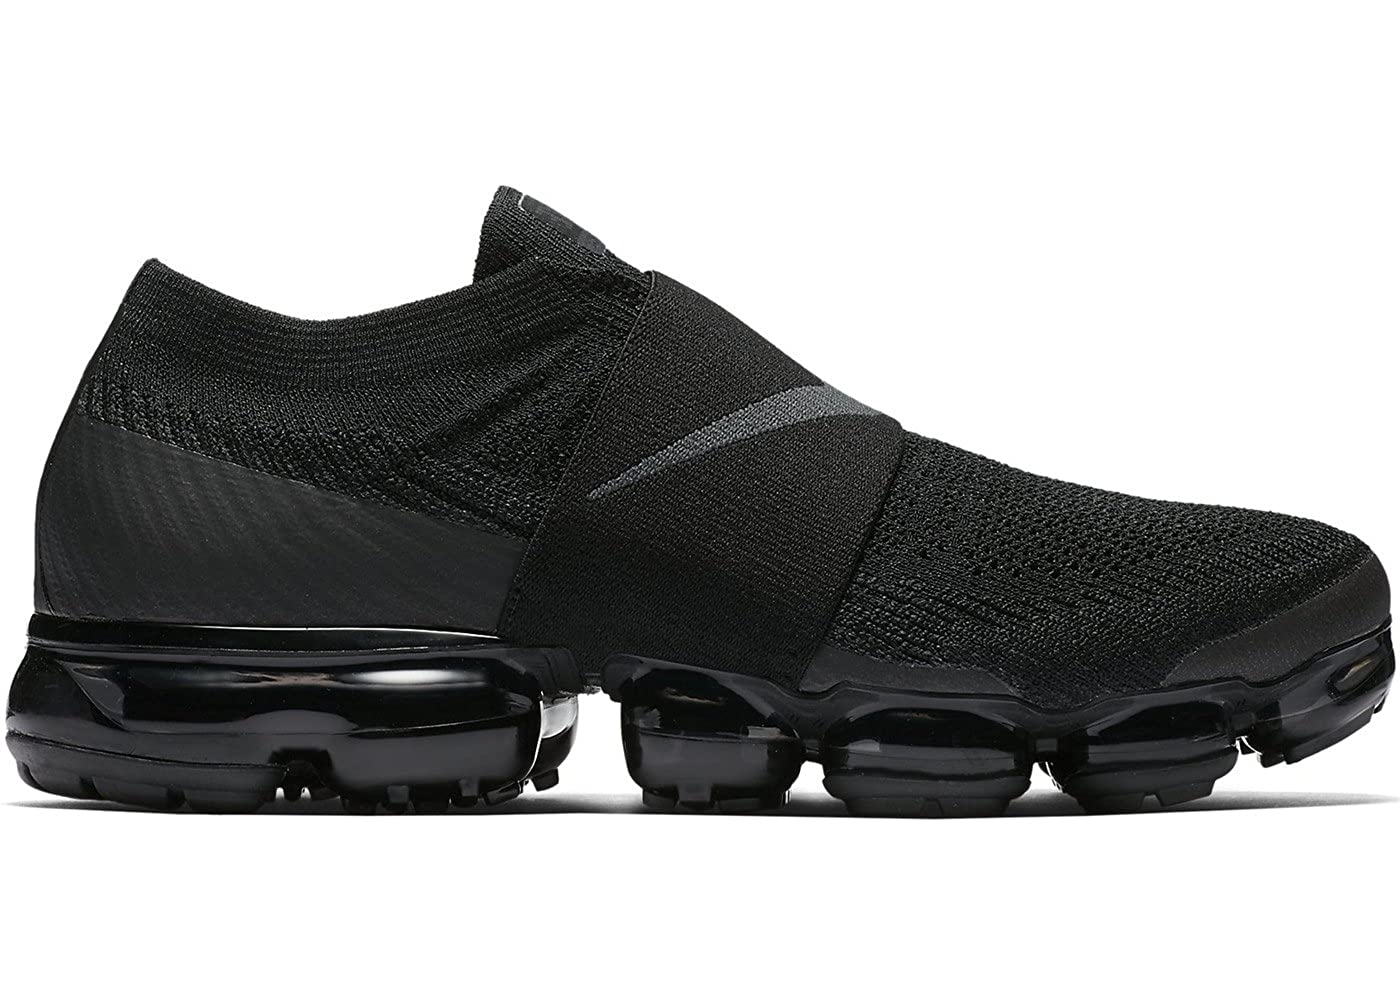 5a27bf69bbd Nike Air Vapormax Flyknit Moc Triple Black Anthracite 7.5 UK 42 EUR   Amazon.co.uk  Shoes   Bags